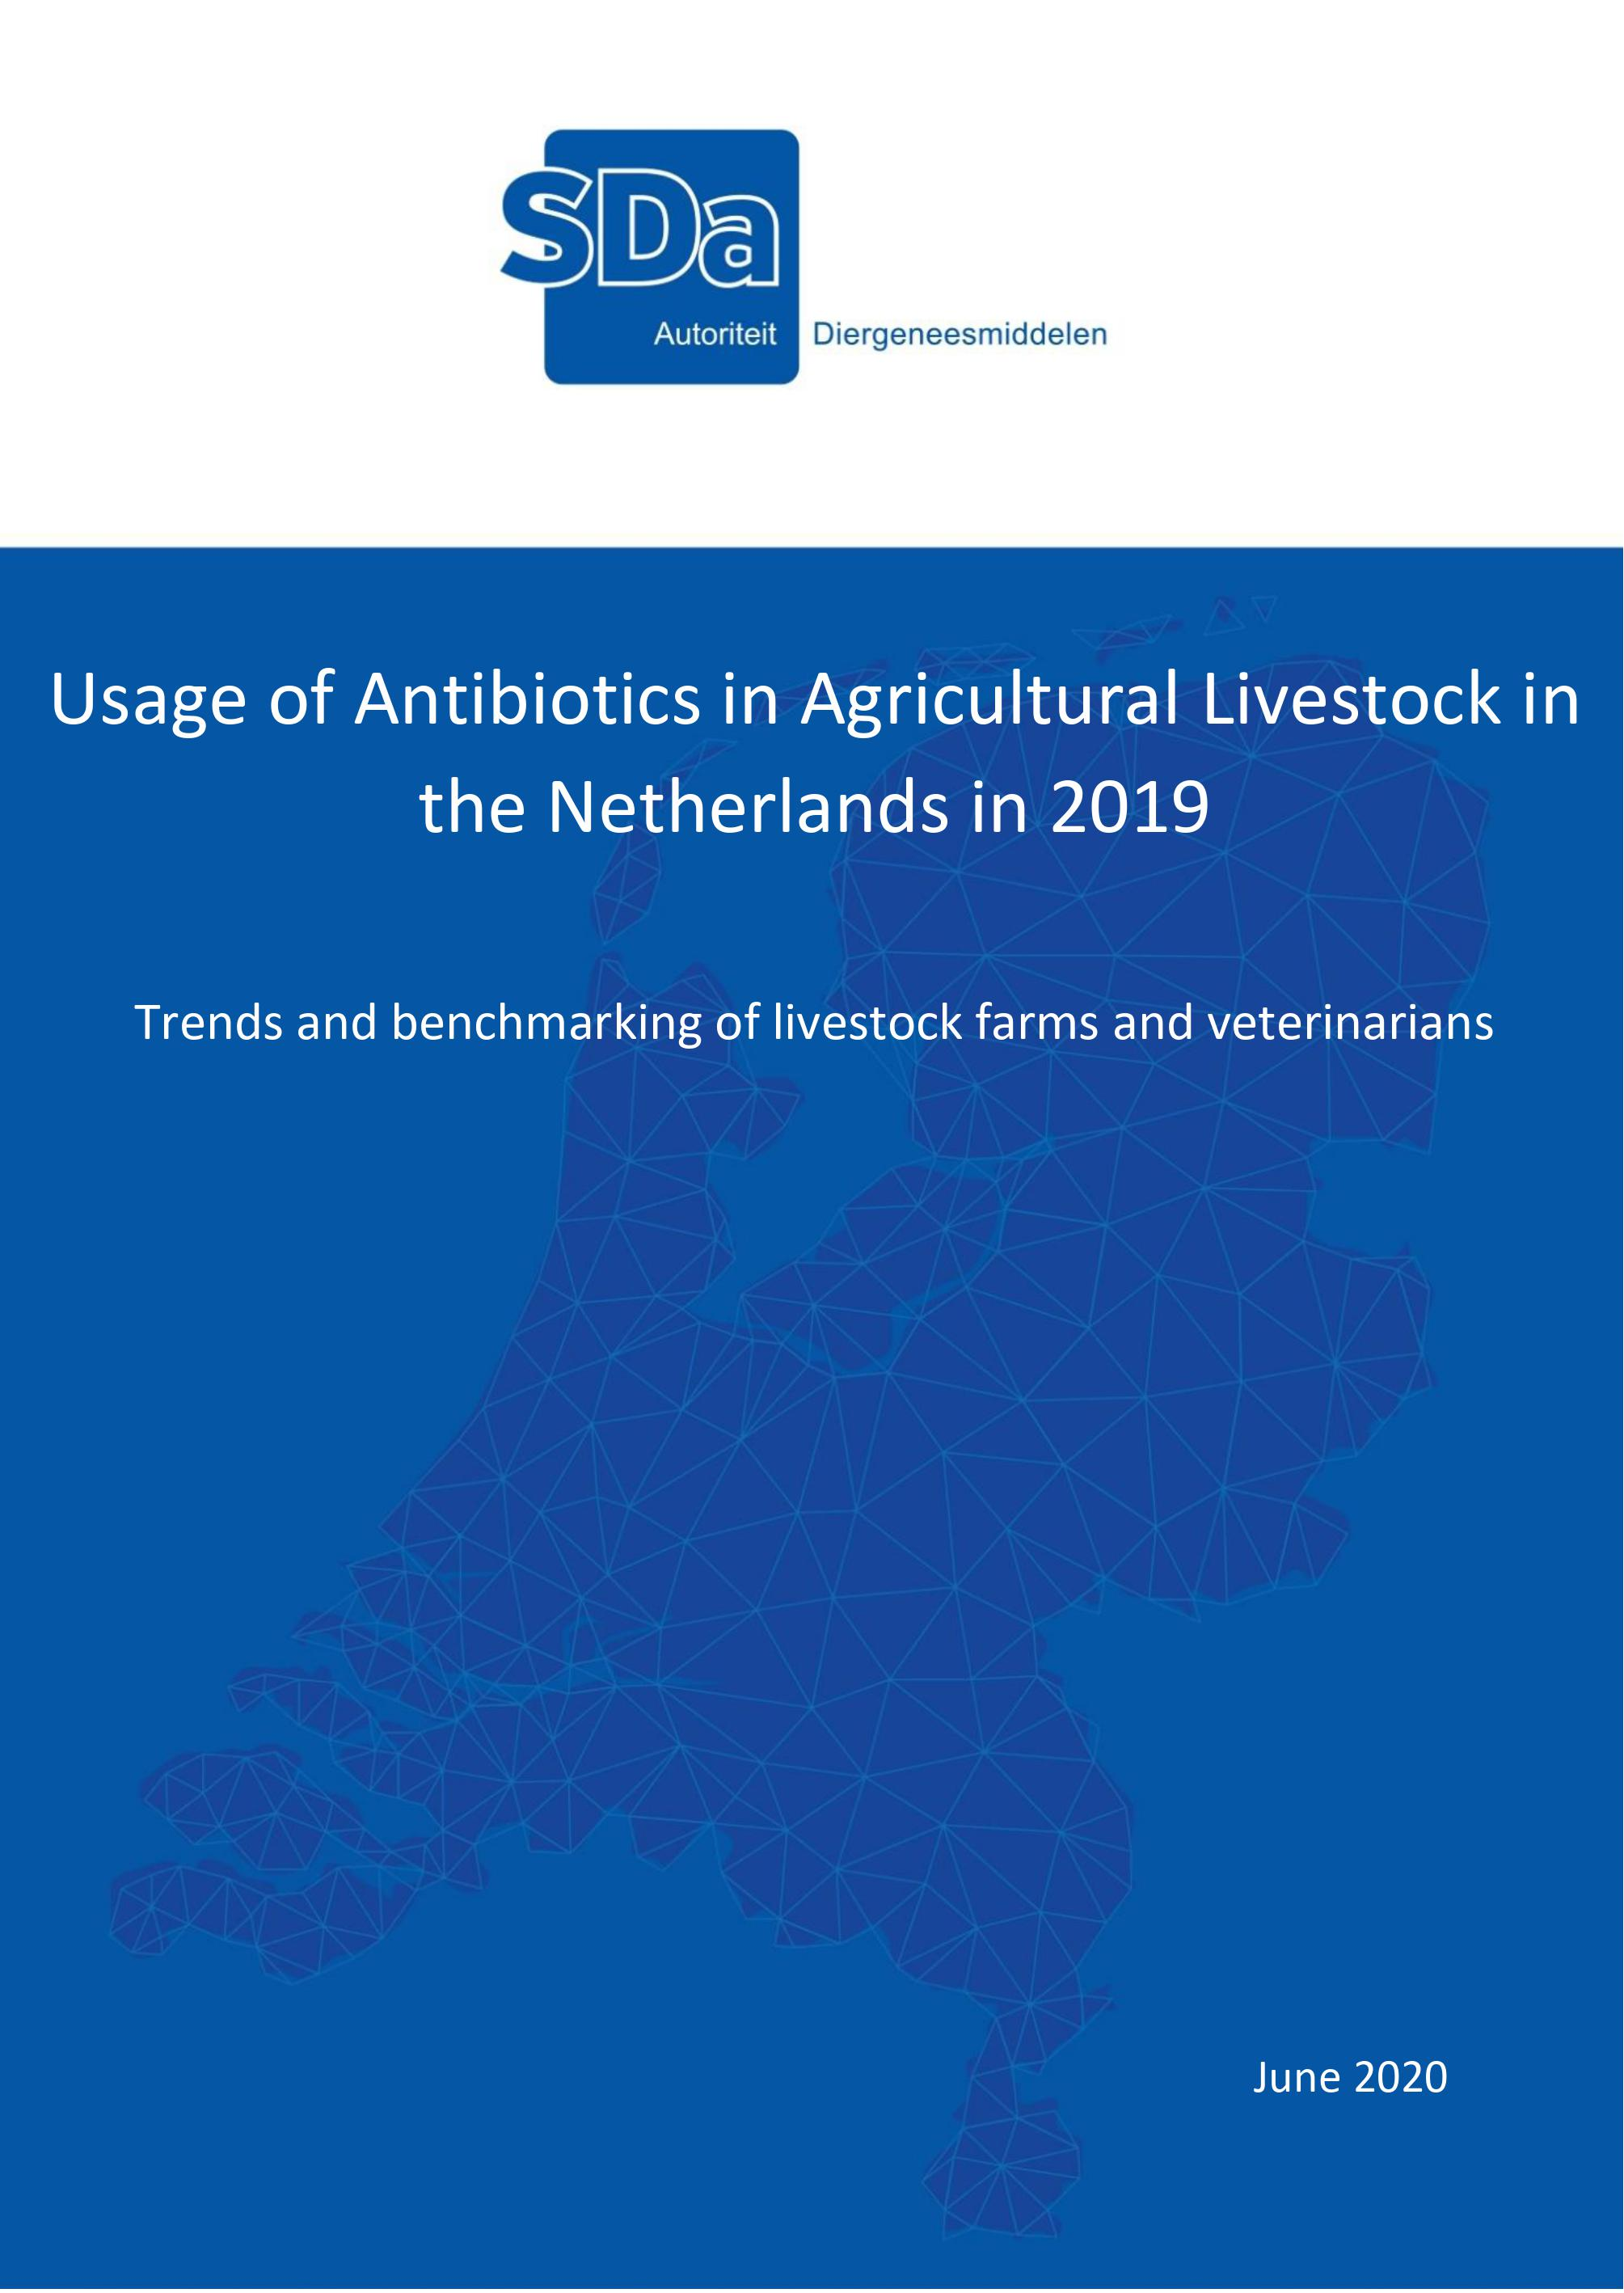 SDa-report 'Usage of antibiotics in agricultural livestock in the Netherlands in 2019'